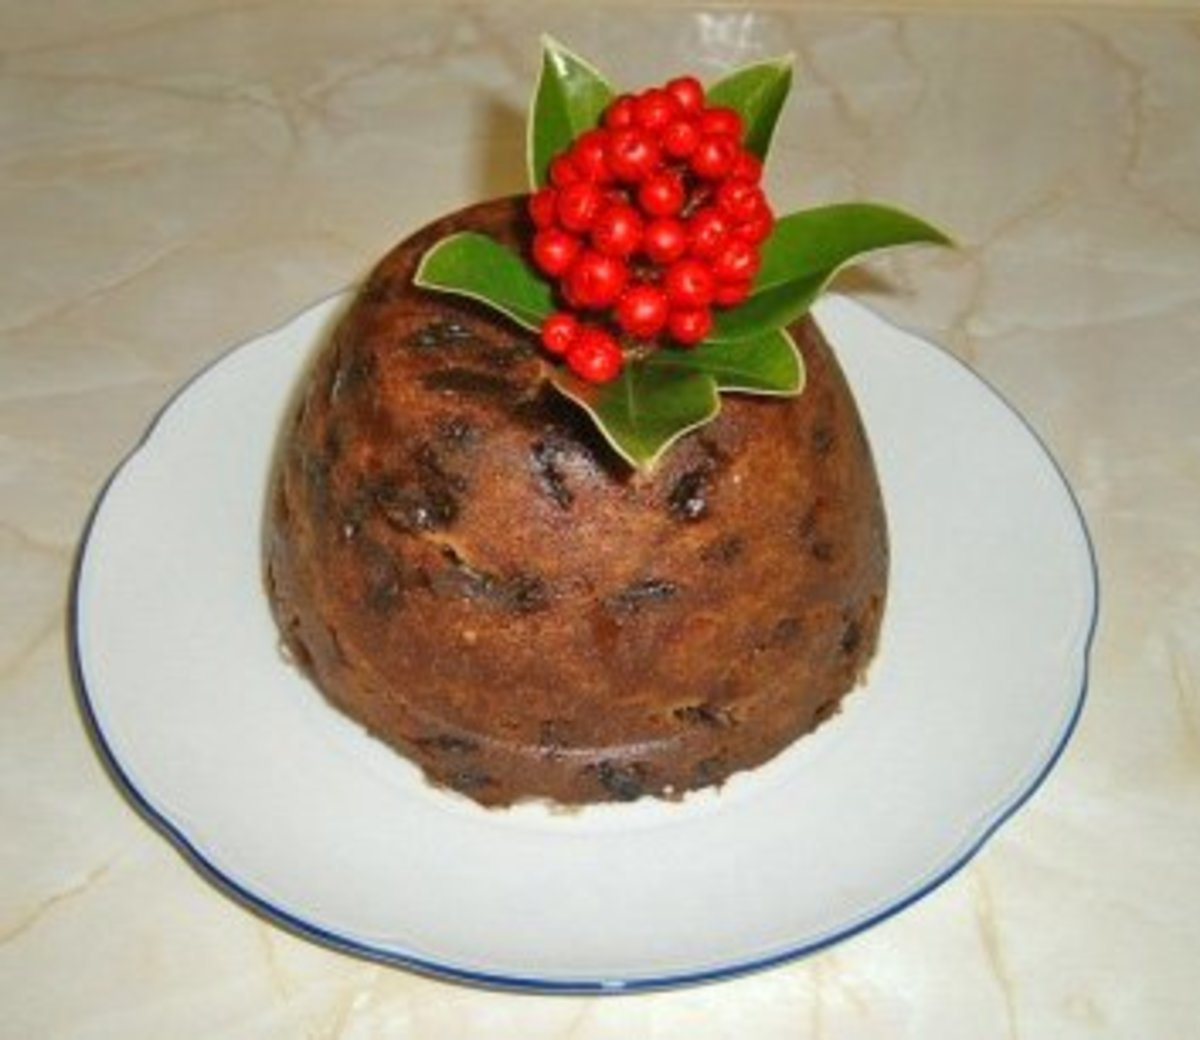 Christmas Pudding, a.k.a. Figgy Pudding, is an age-old holiday tradition in the UK.